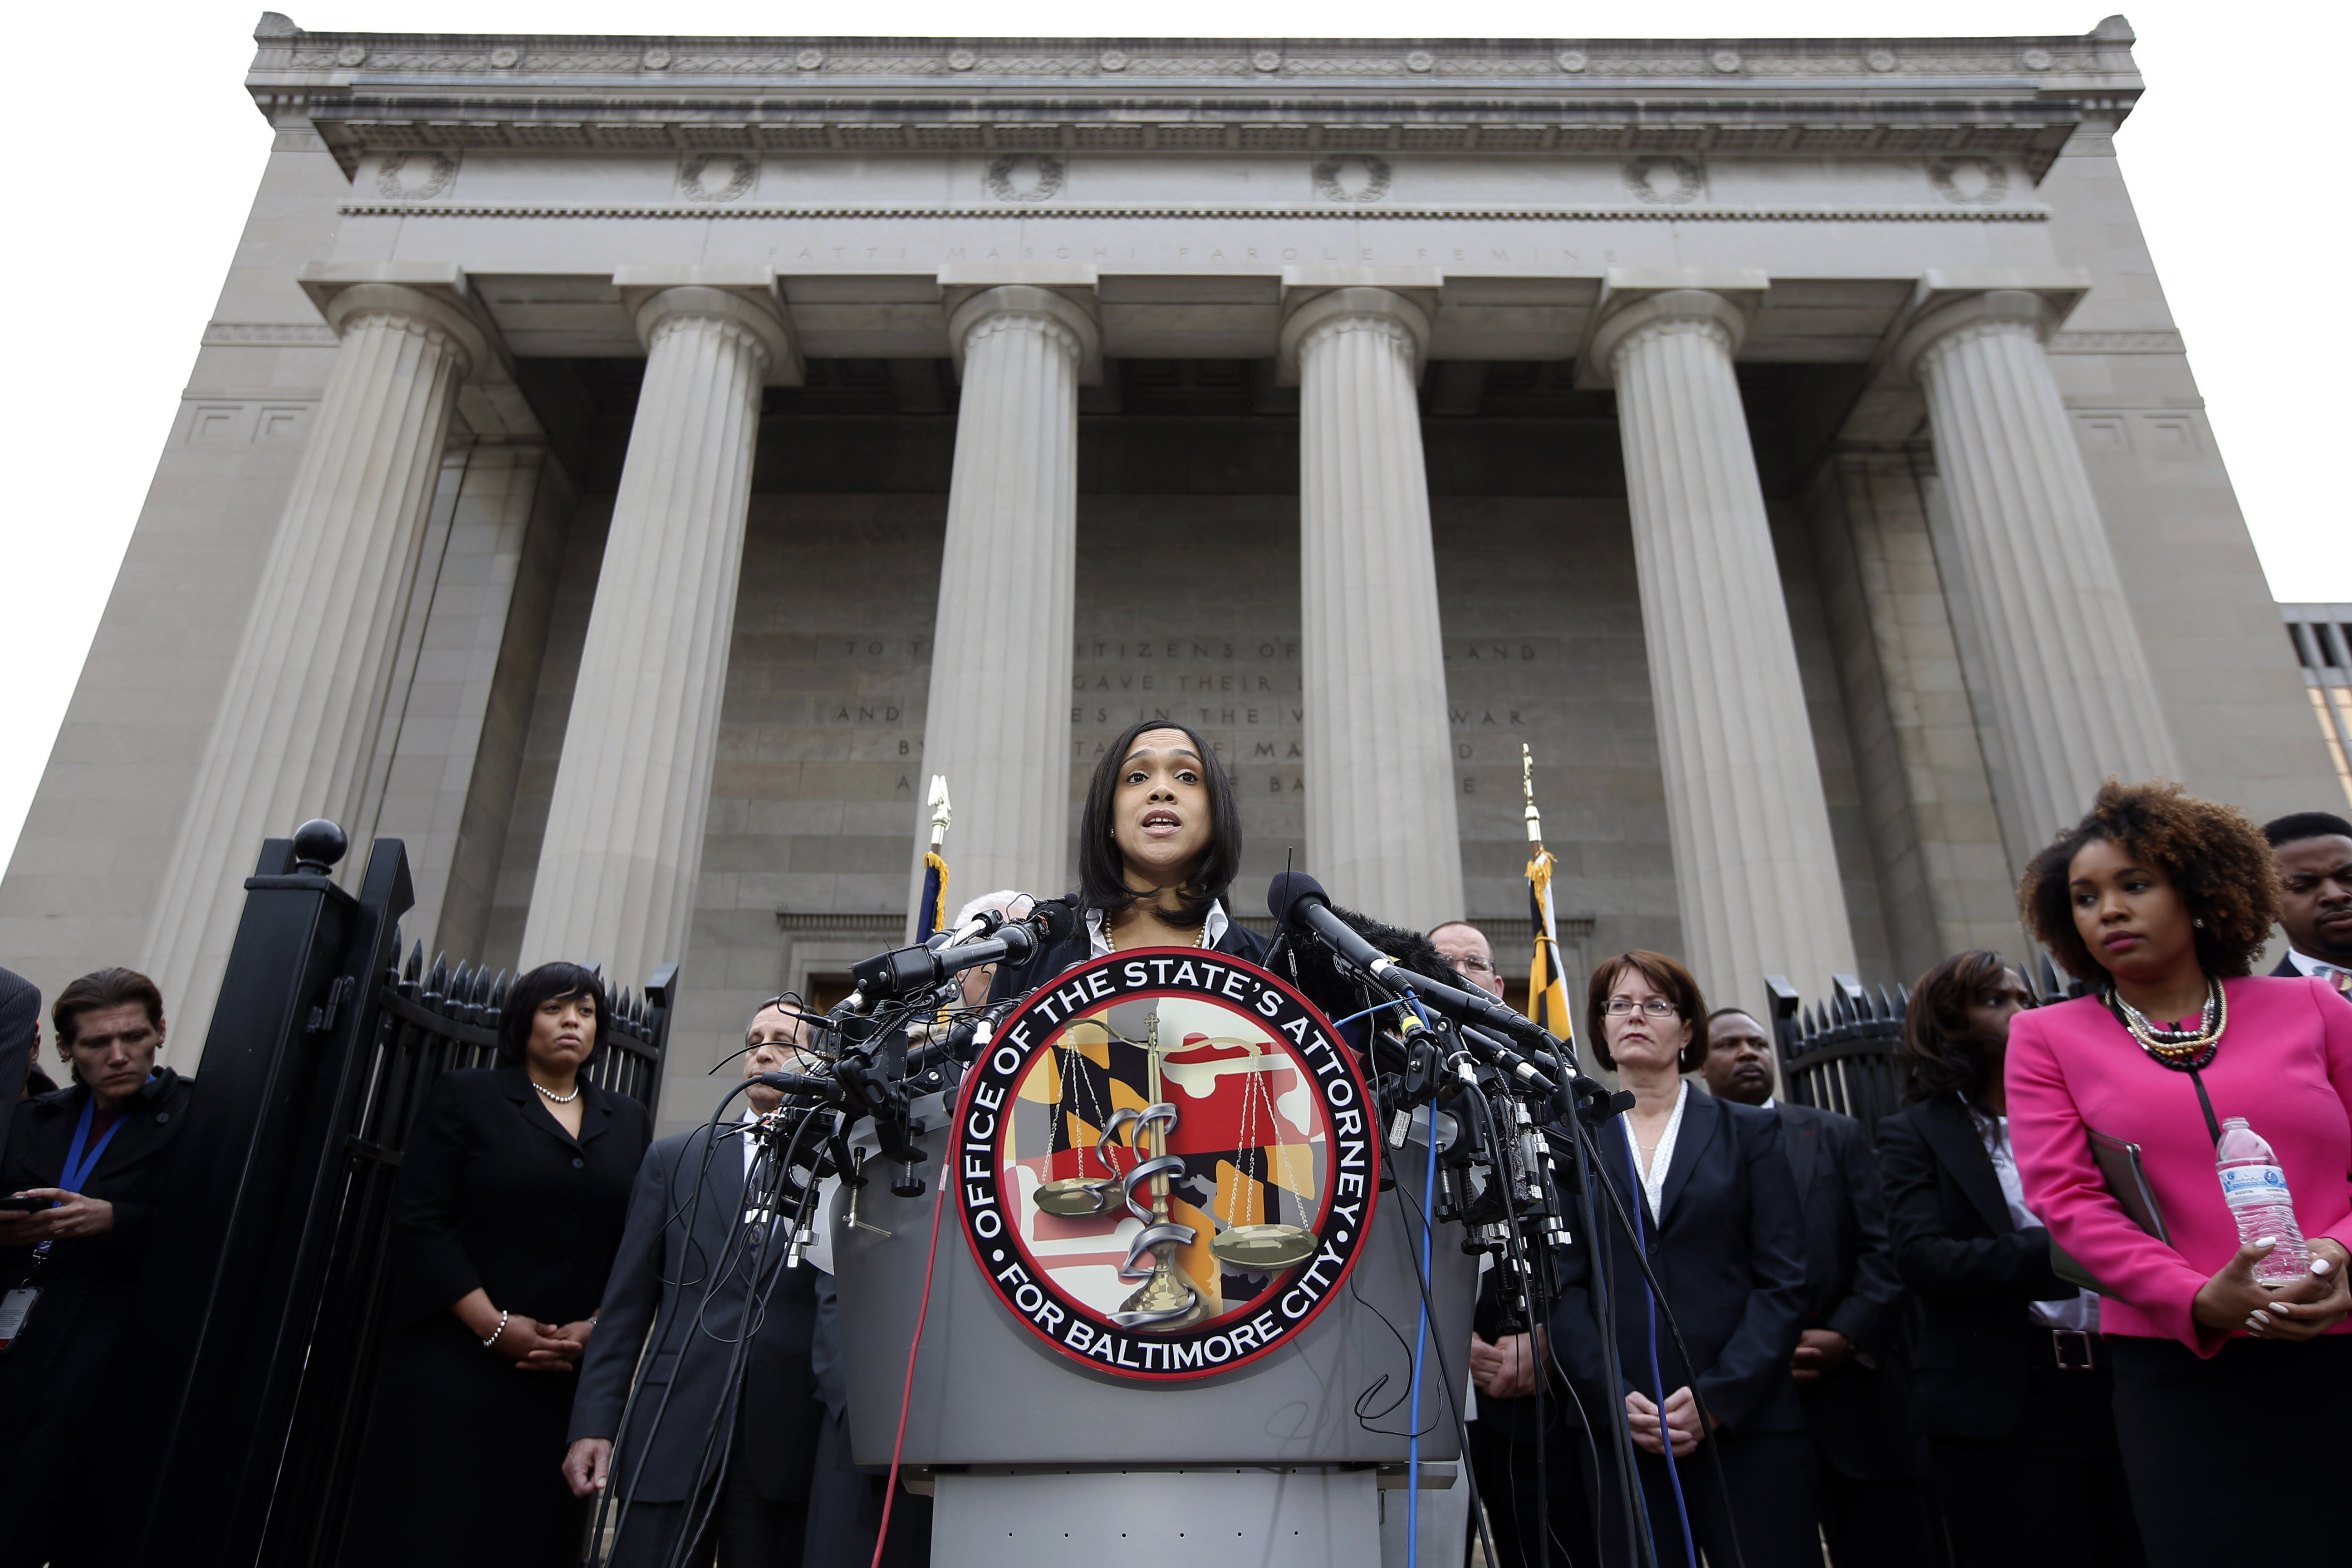 Marilyn Mosby, Baltimore state's attorney, speaks during a media availability in Baltimore on May 1, 2015.